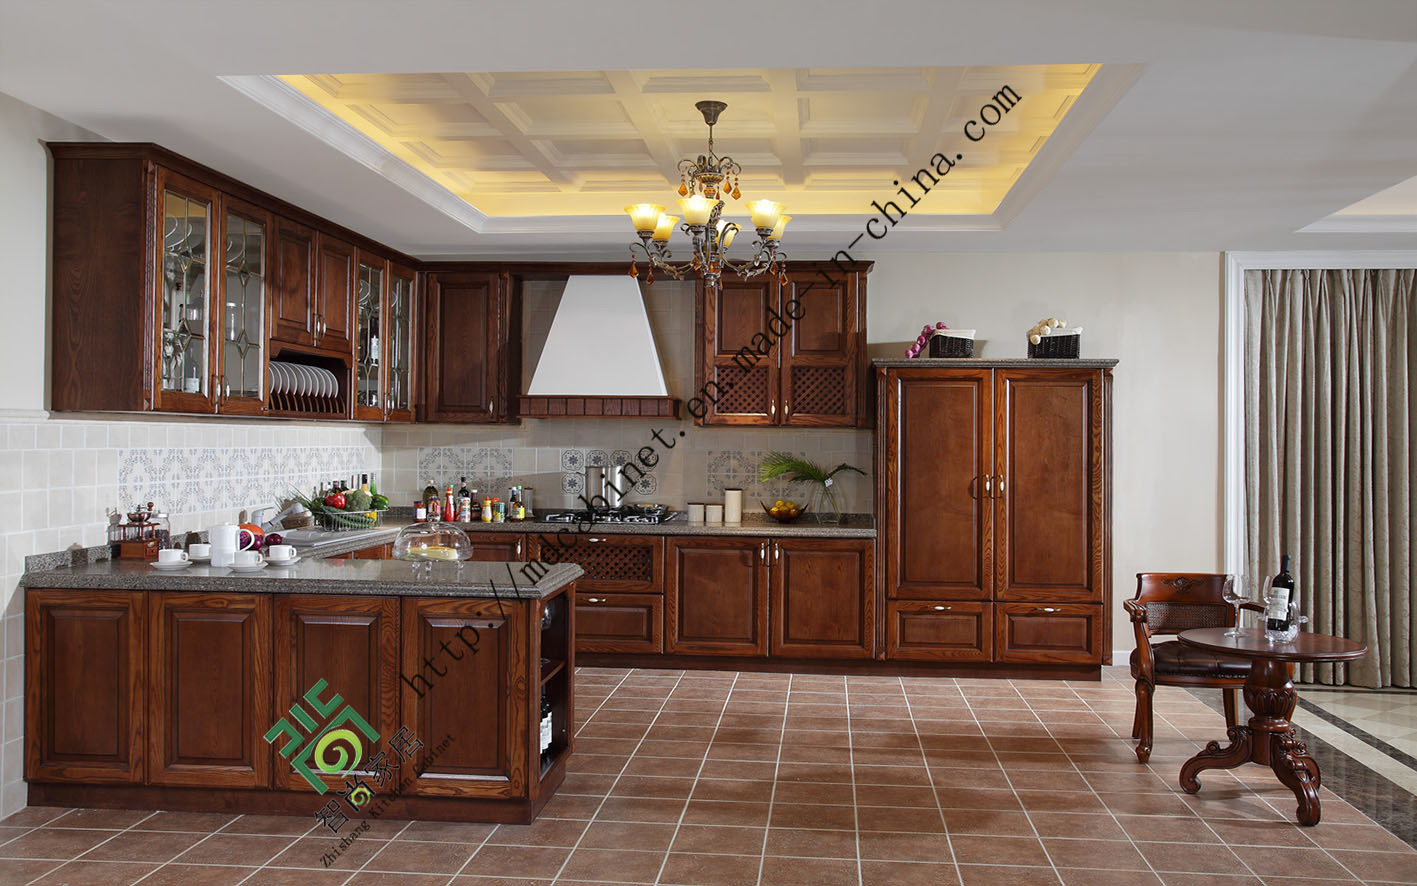 China 2014 new style carve kitchen cabinet zs 171 photos for Latest kitchen cabinets